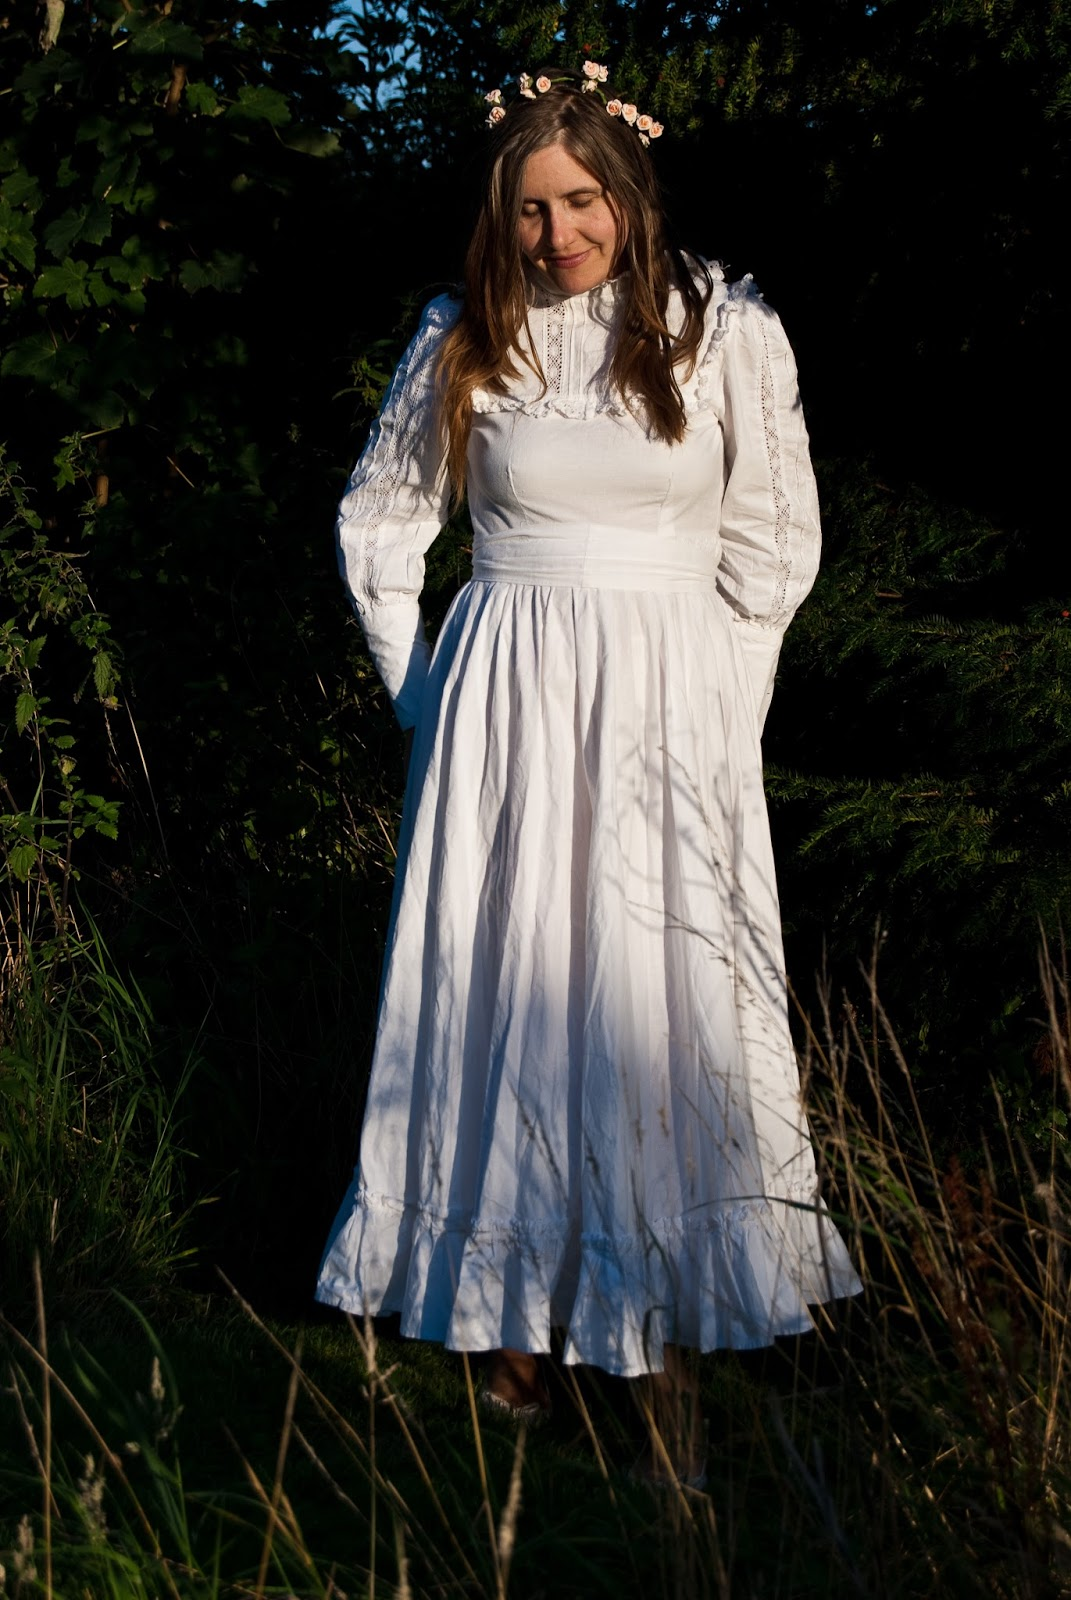 vintage laura ashley wedding prairie laura ashley wedding dresses Vintage Laura Ashley wedding prairie dress from the s